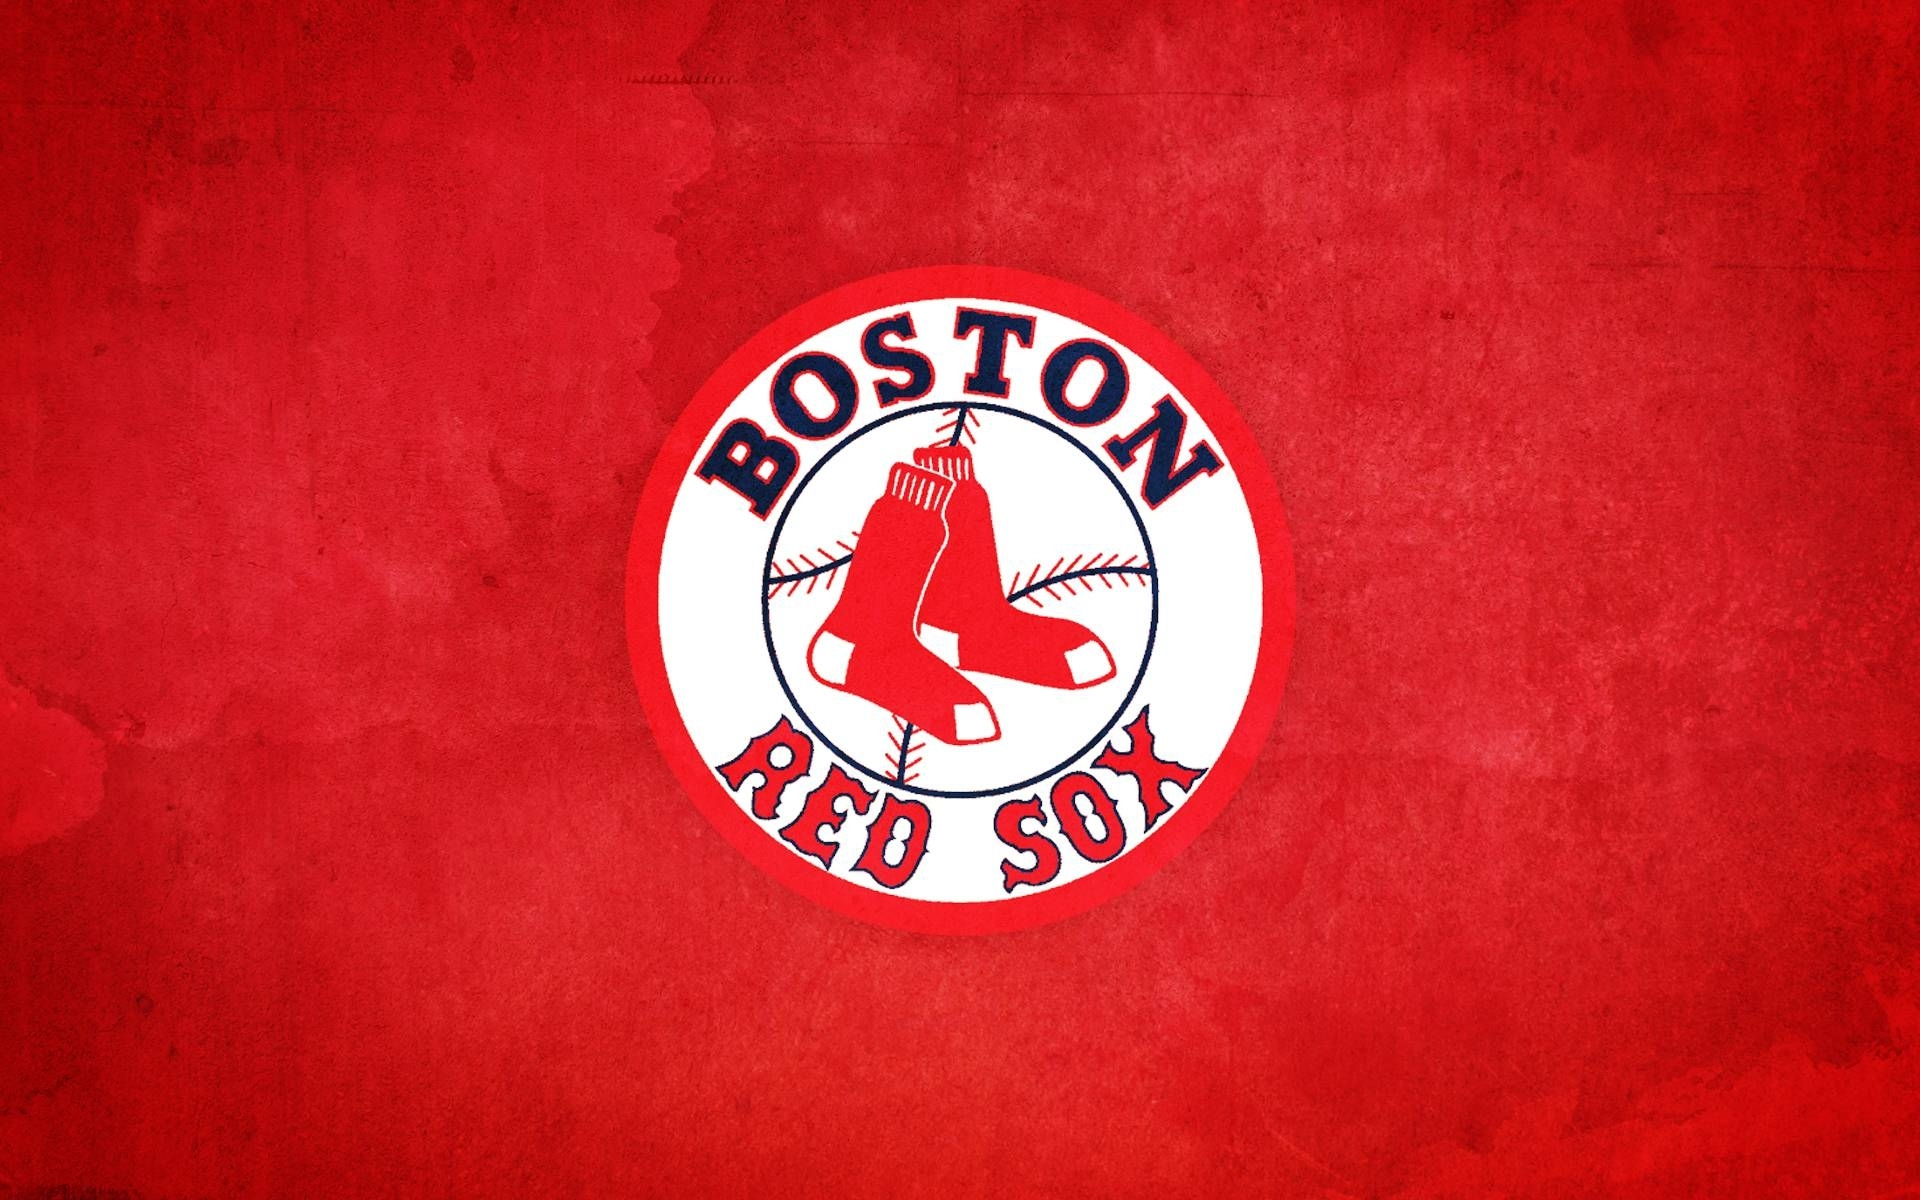 boston red sox background collection (42+)